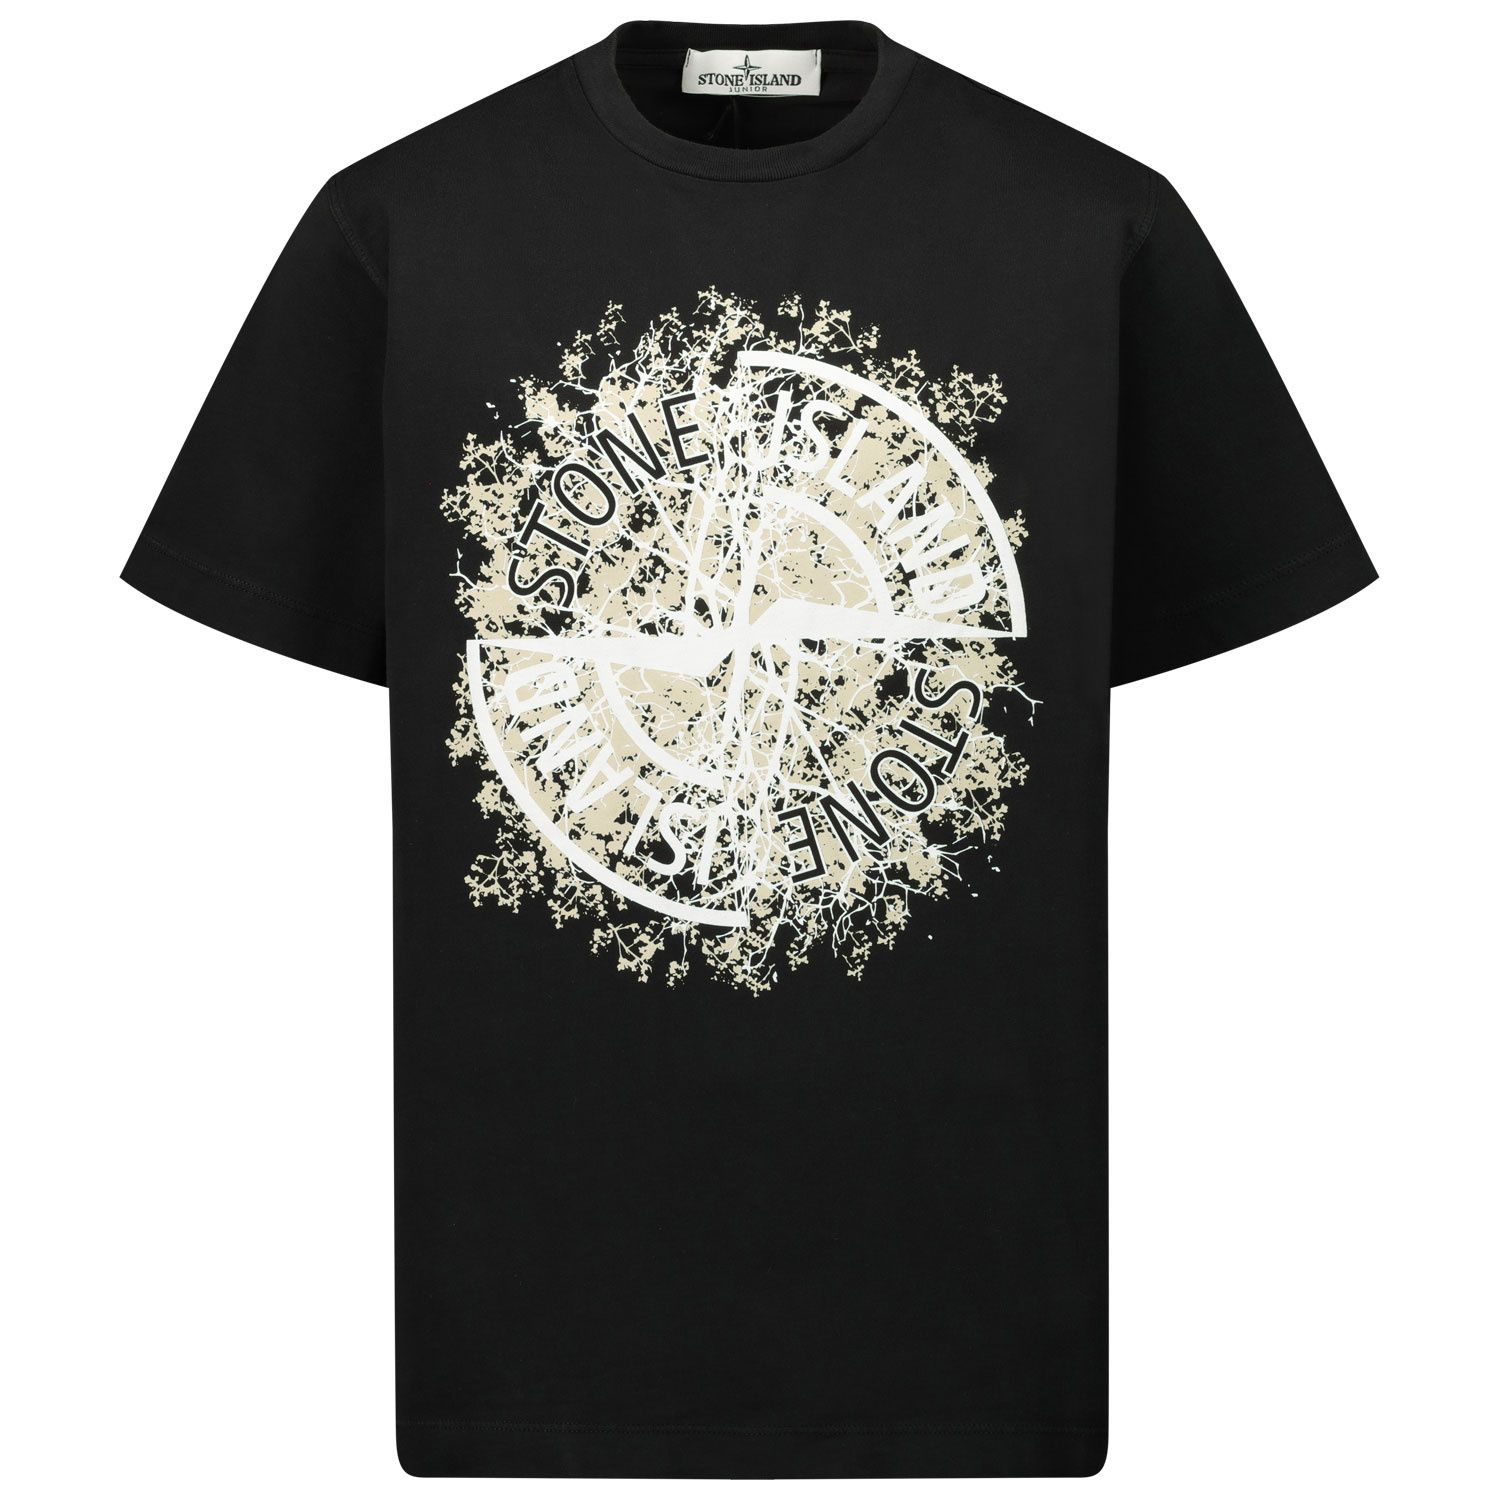 Picture of Stone Island MO731621057 kids t-shirt black